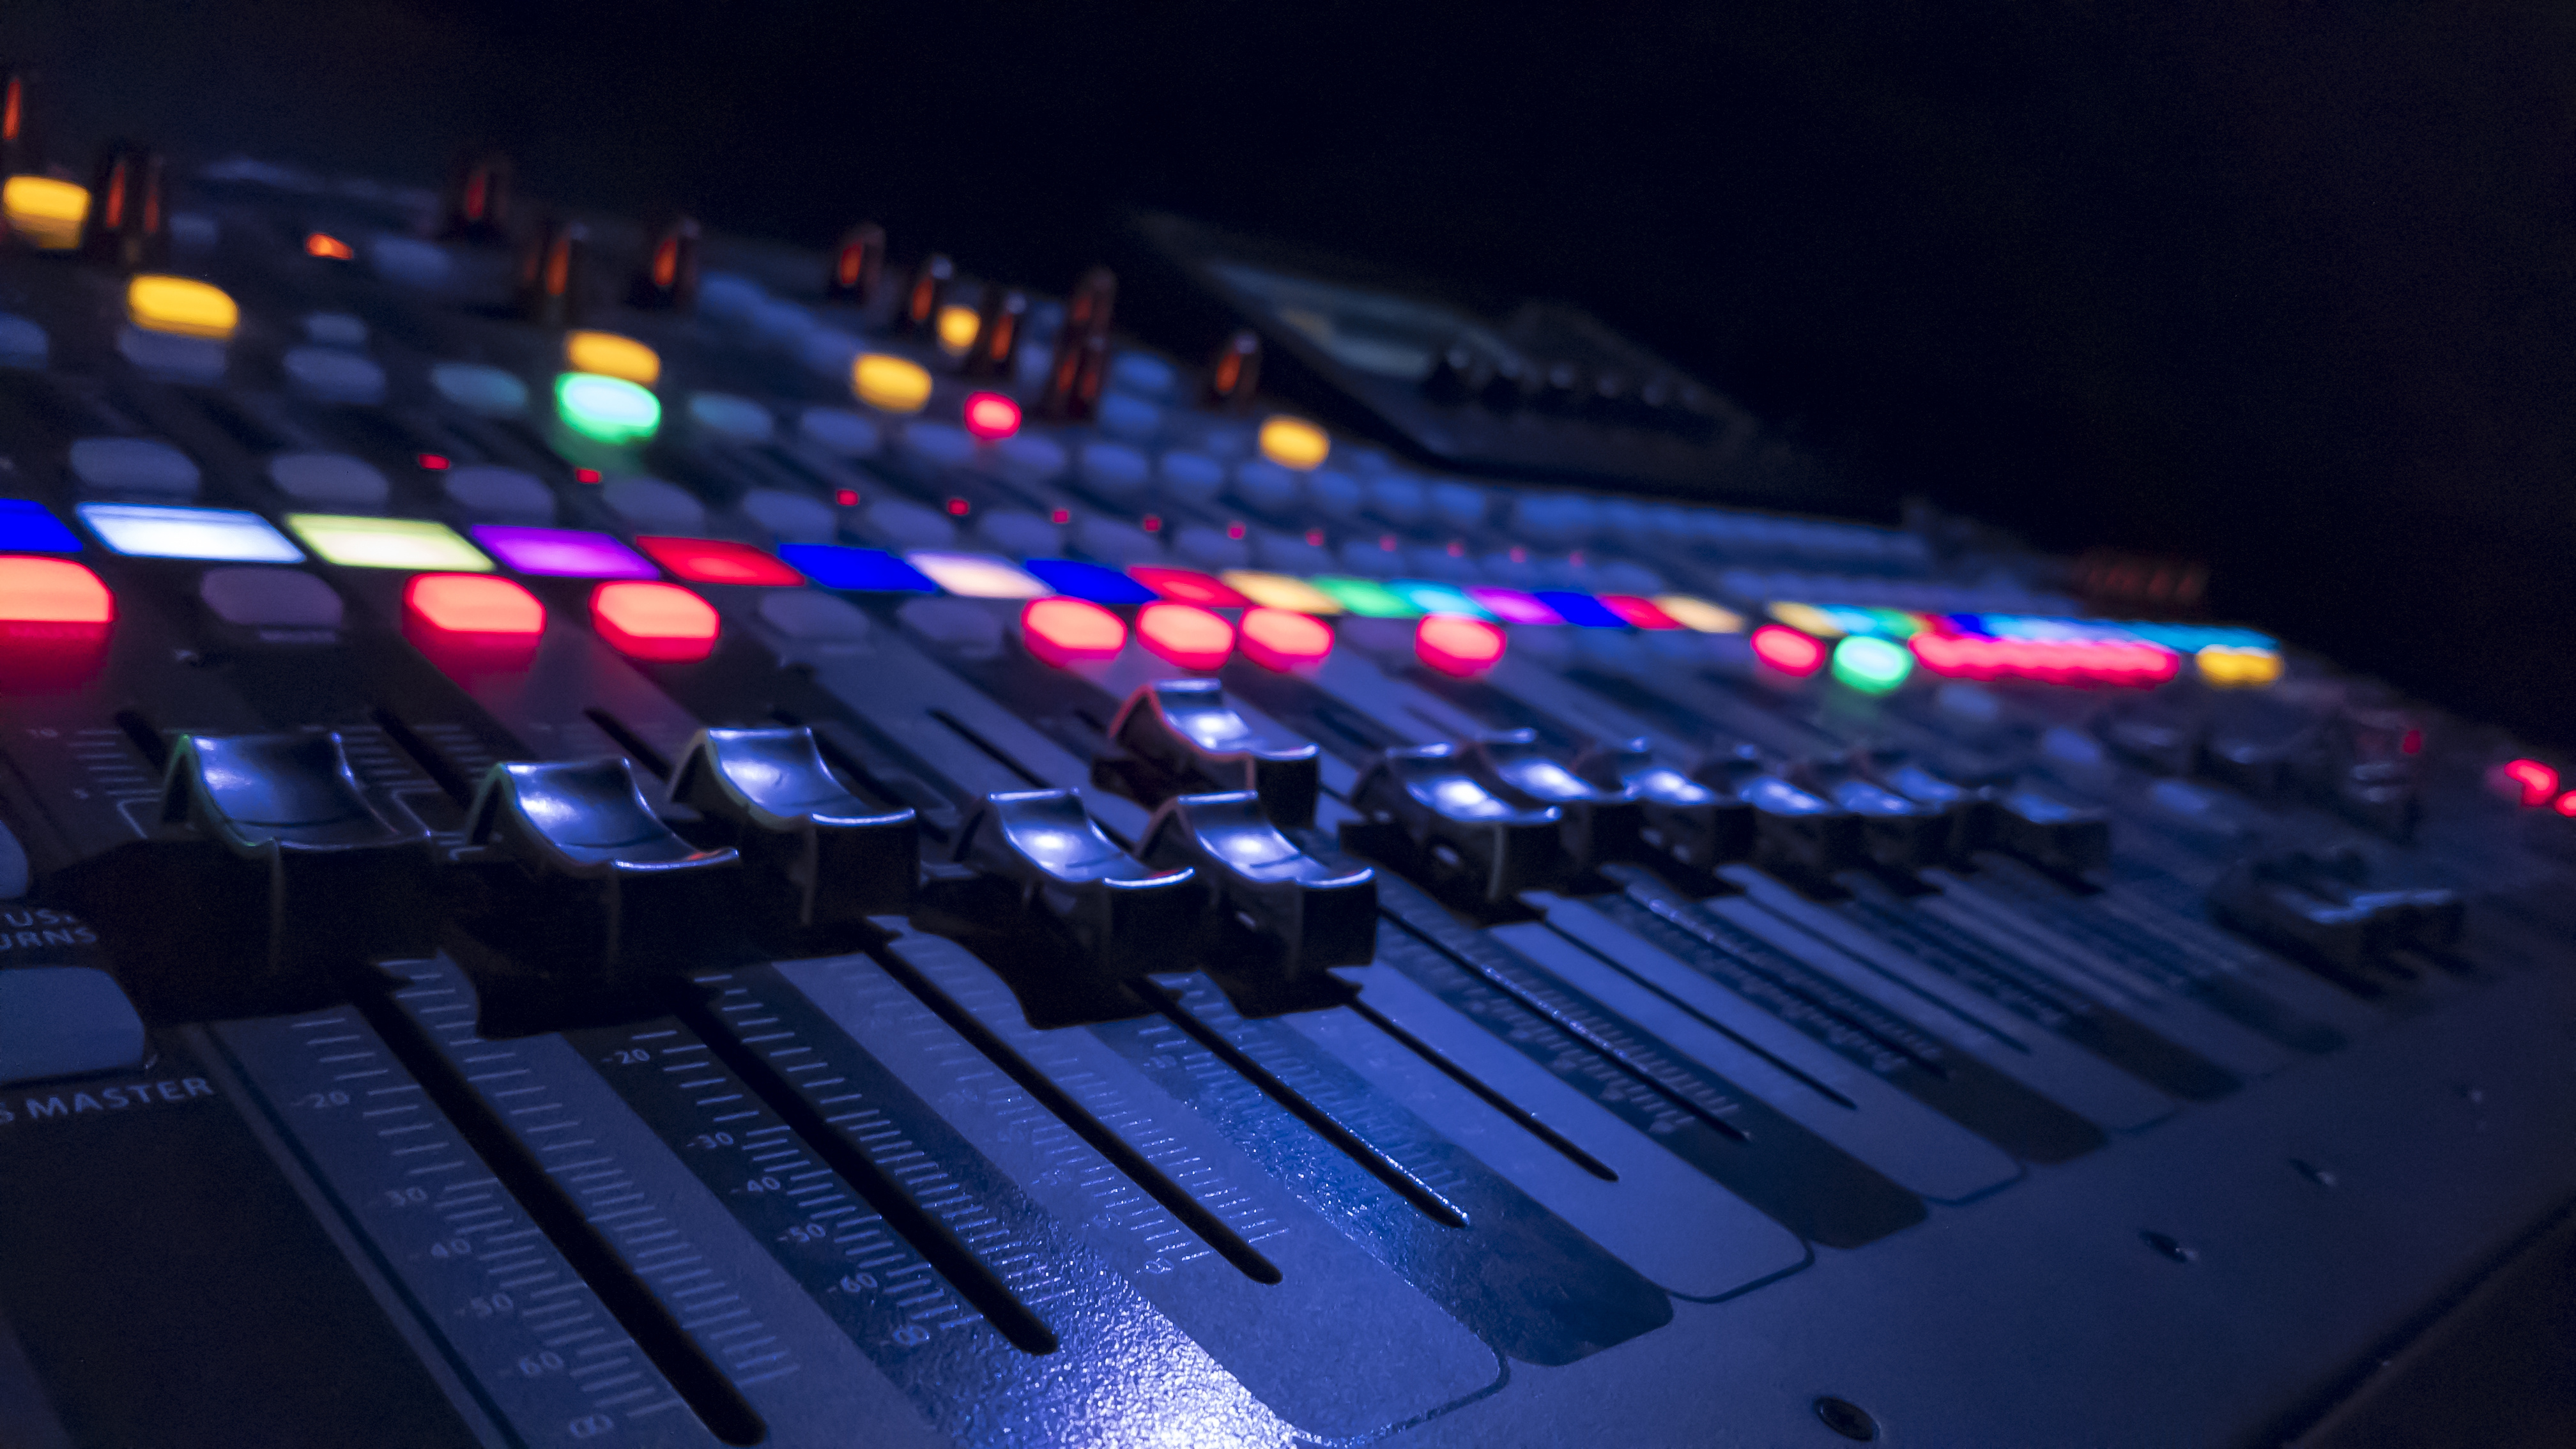 A colorful mixing console in a dark room lit up with bright colors